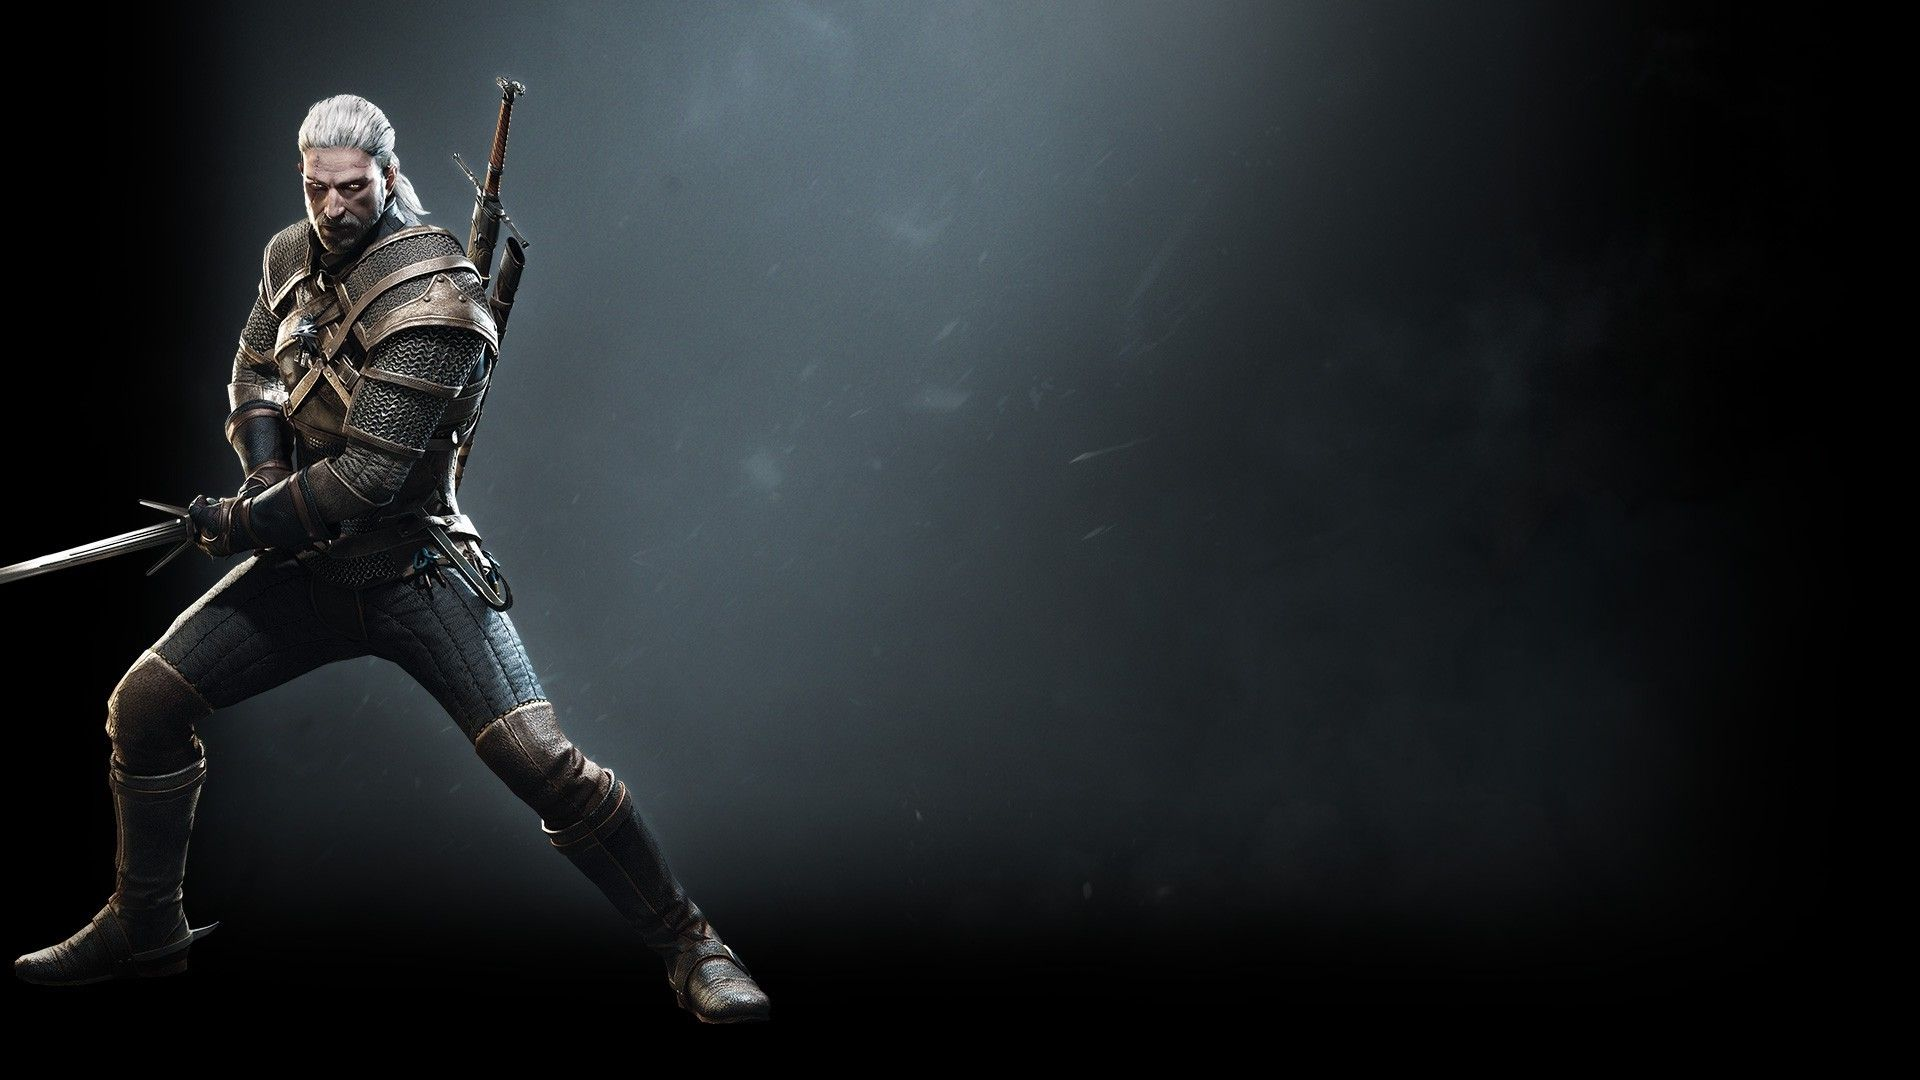 Witcher, Free Download Wallpaper